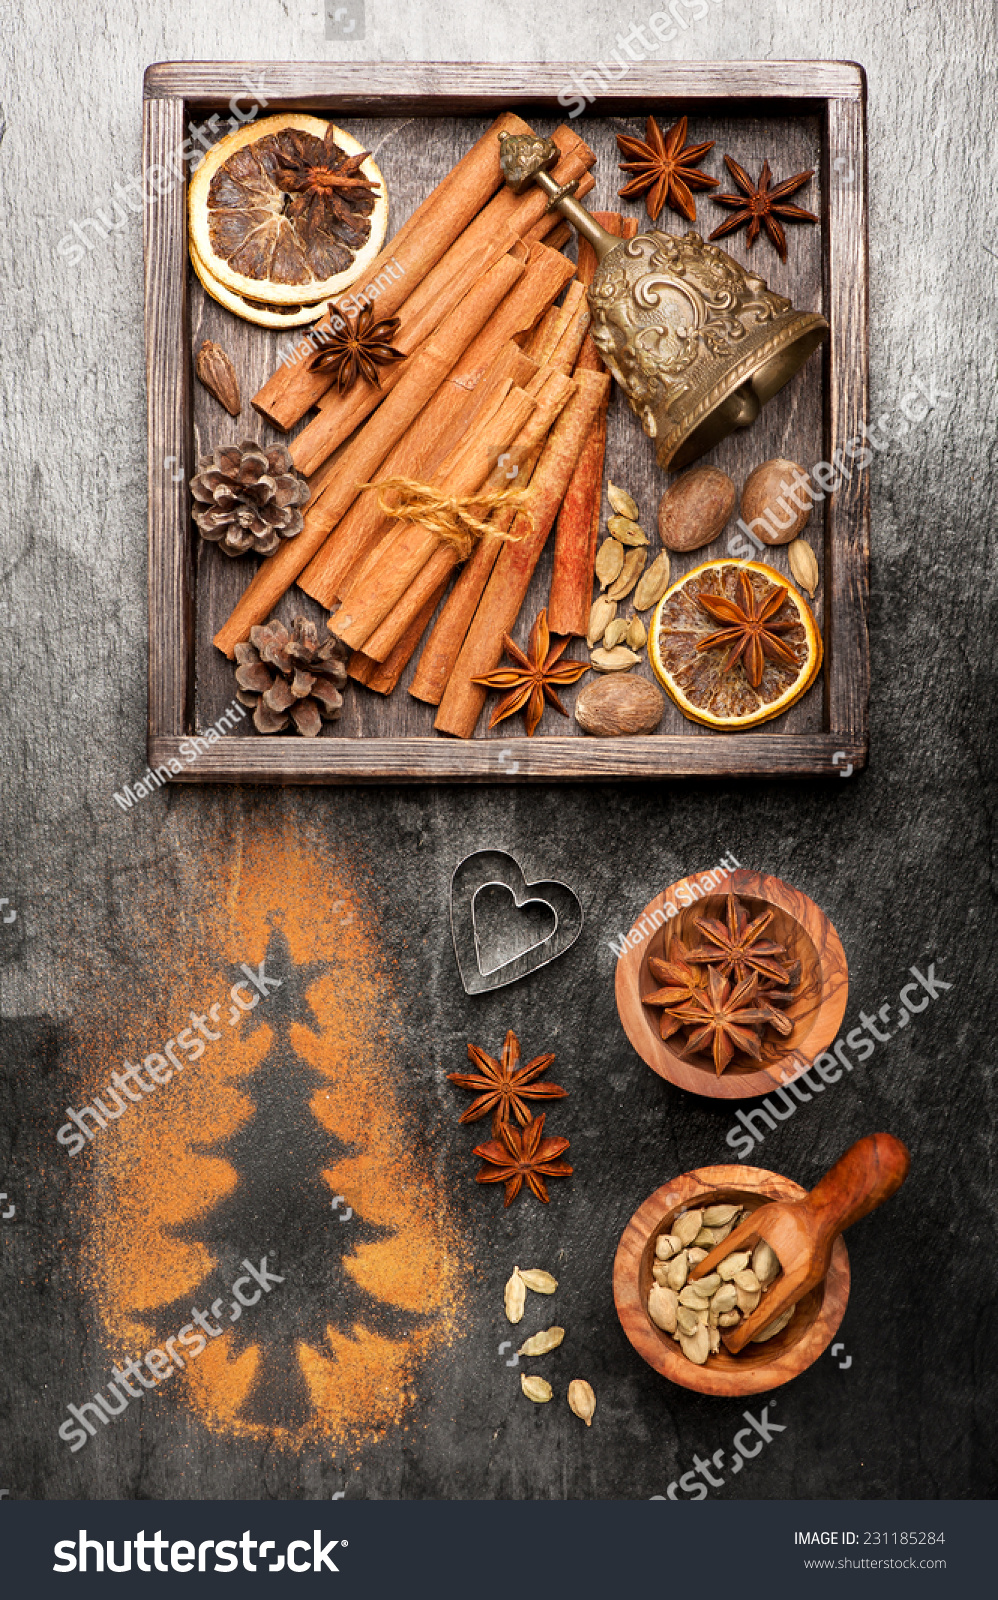 Vintage christmas card spices baking christmas stock photo for Baking oranges for christmas decoration